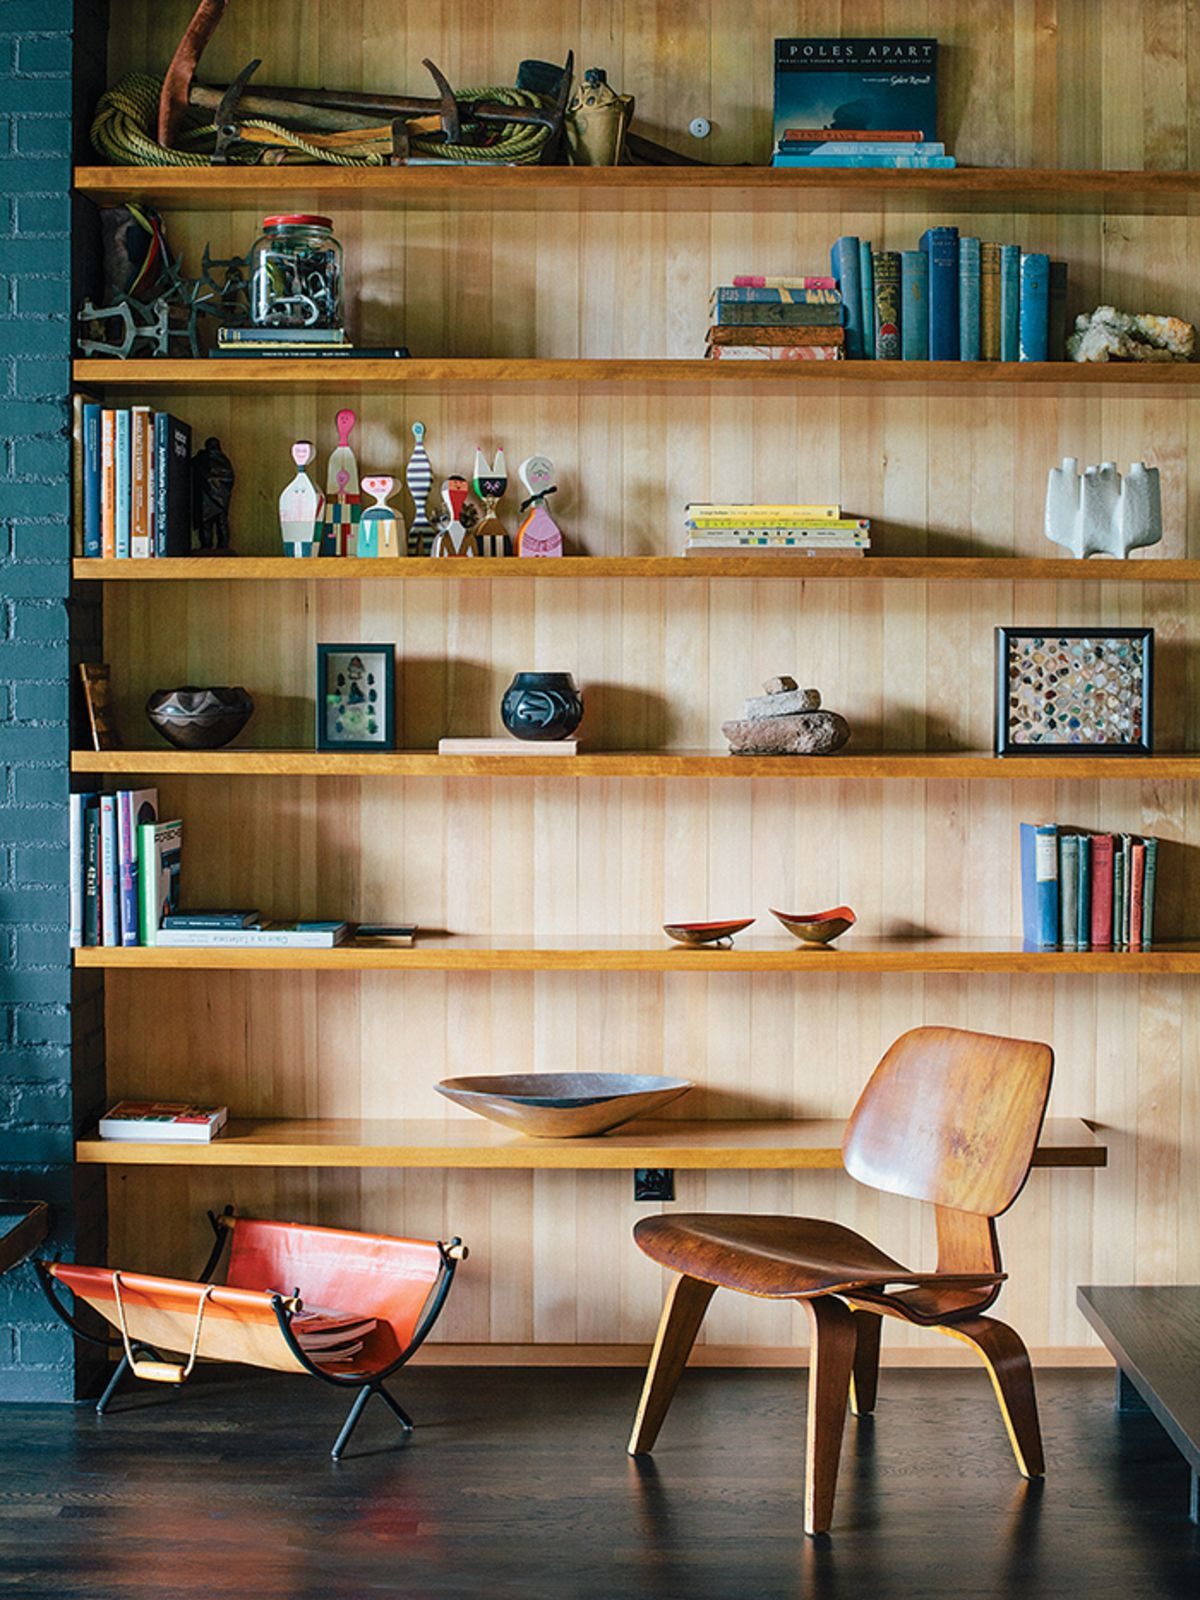 From midcentury renovation in portland capitalizes on nature with